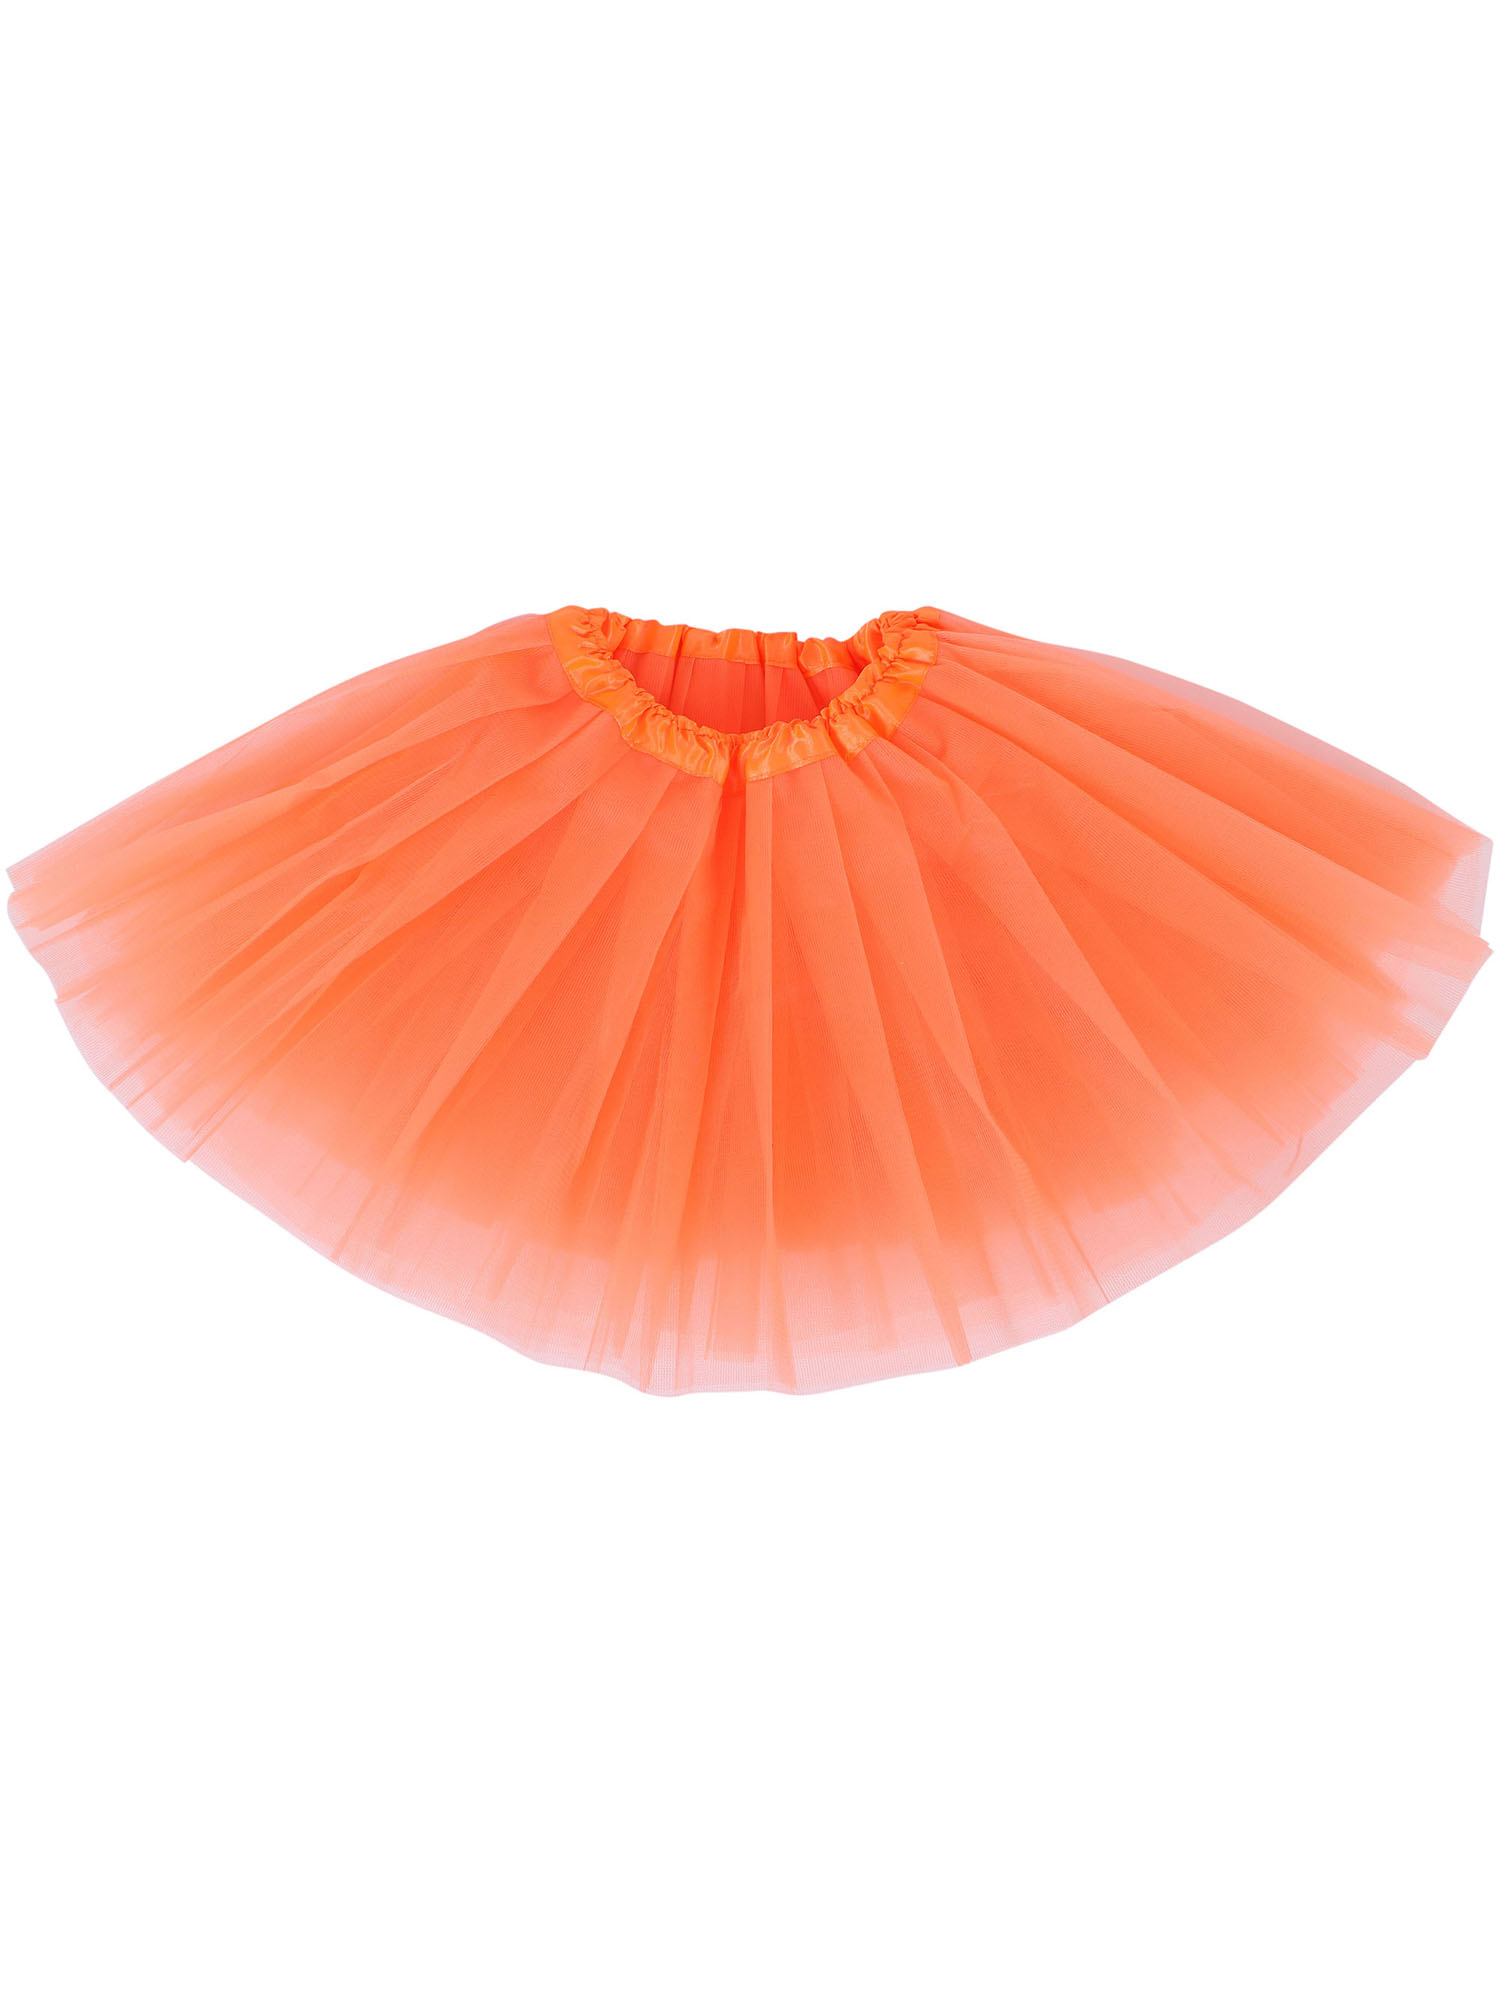 Baby Kids Girls Cute Soft Tulle Tutu Skirt Princess Ballet Dance Skirt